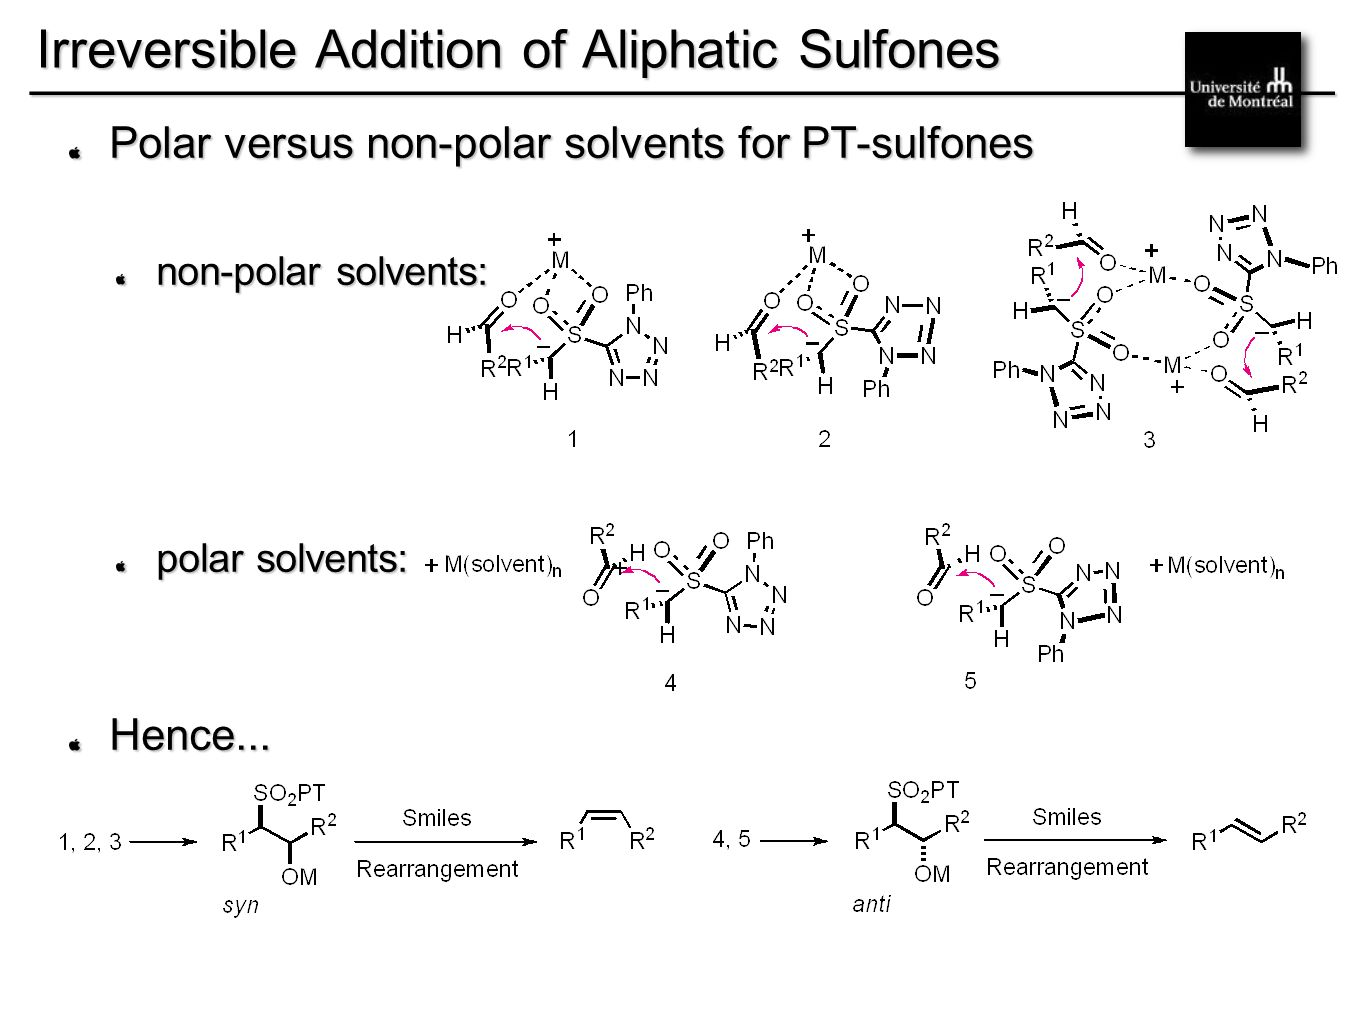 __________________________________________ Irreversible Addition of Aliphatic Sulfones Polar versus non-polar solvents for PT-sulfones non-polar solvents: polar solvents: Hence...